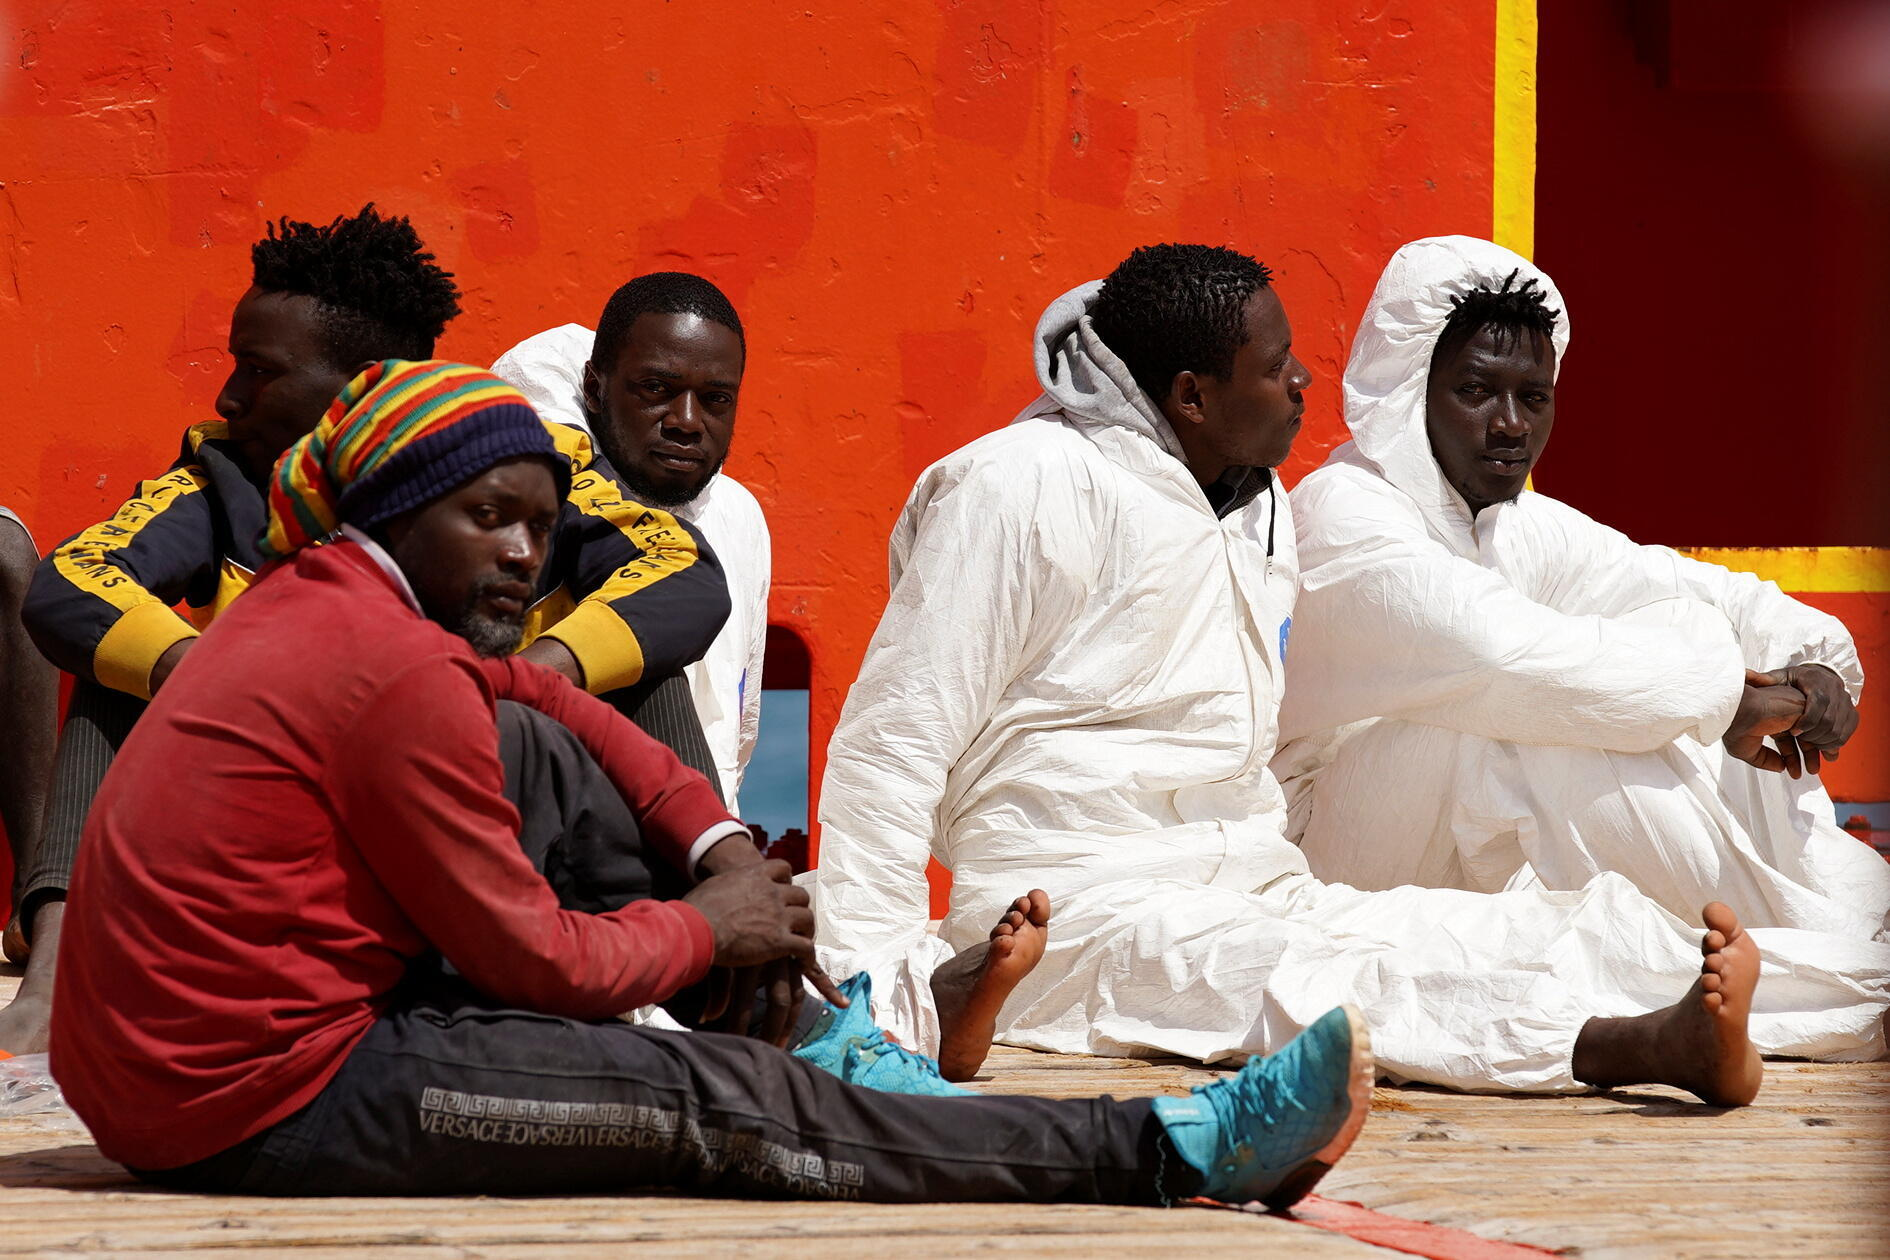 2021-05-11T092129Z_476114926_RC2LDN93OTY1_RTRMADP_3_EUROPE-MIGRANTS-ITALY